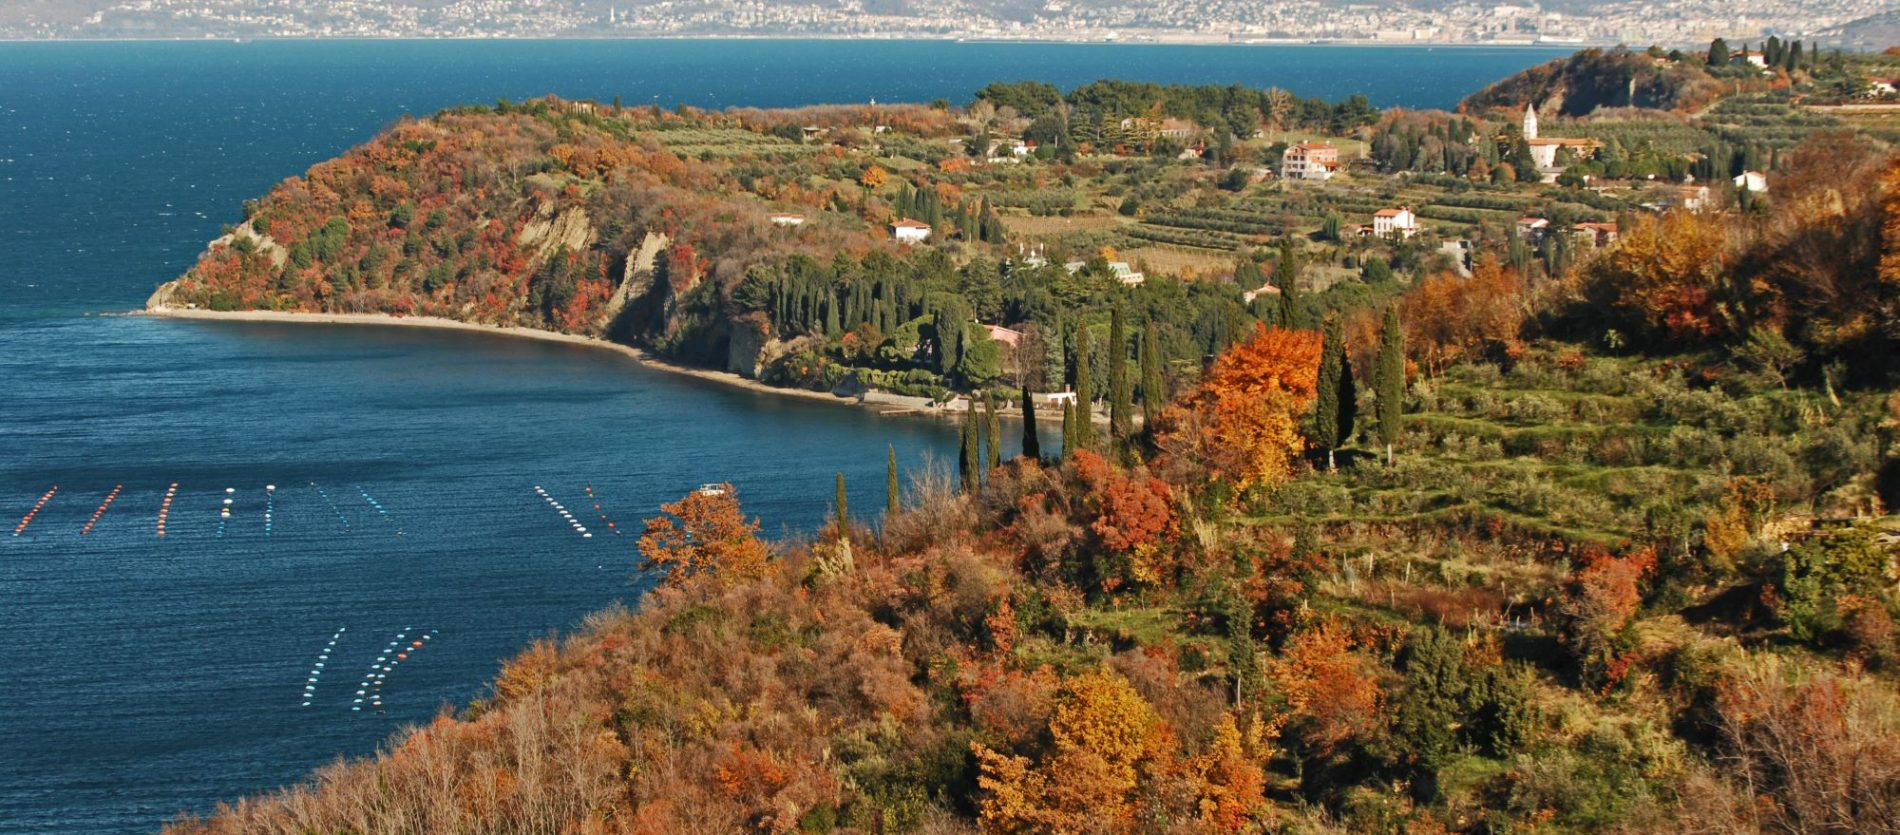 Experience the relaxed side of the Slovenian Coast